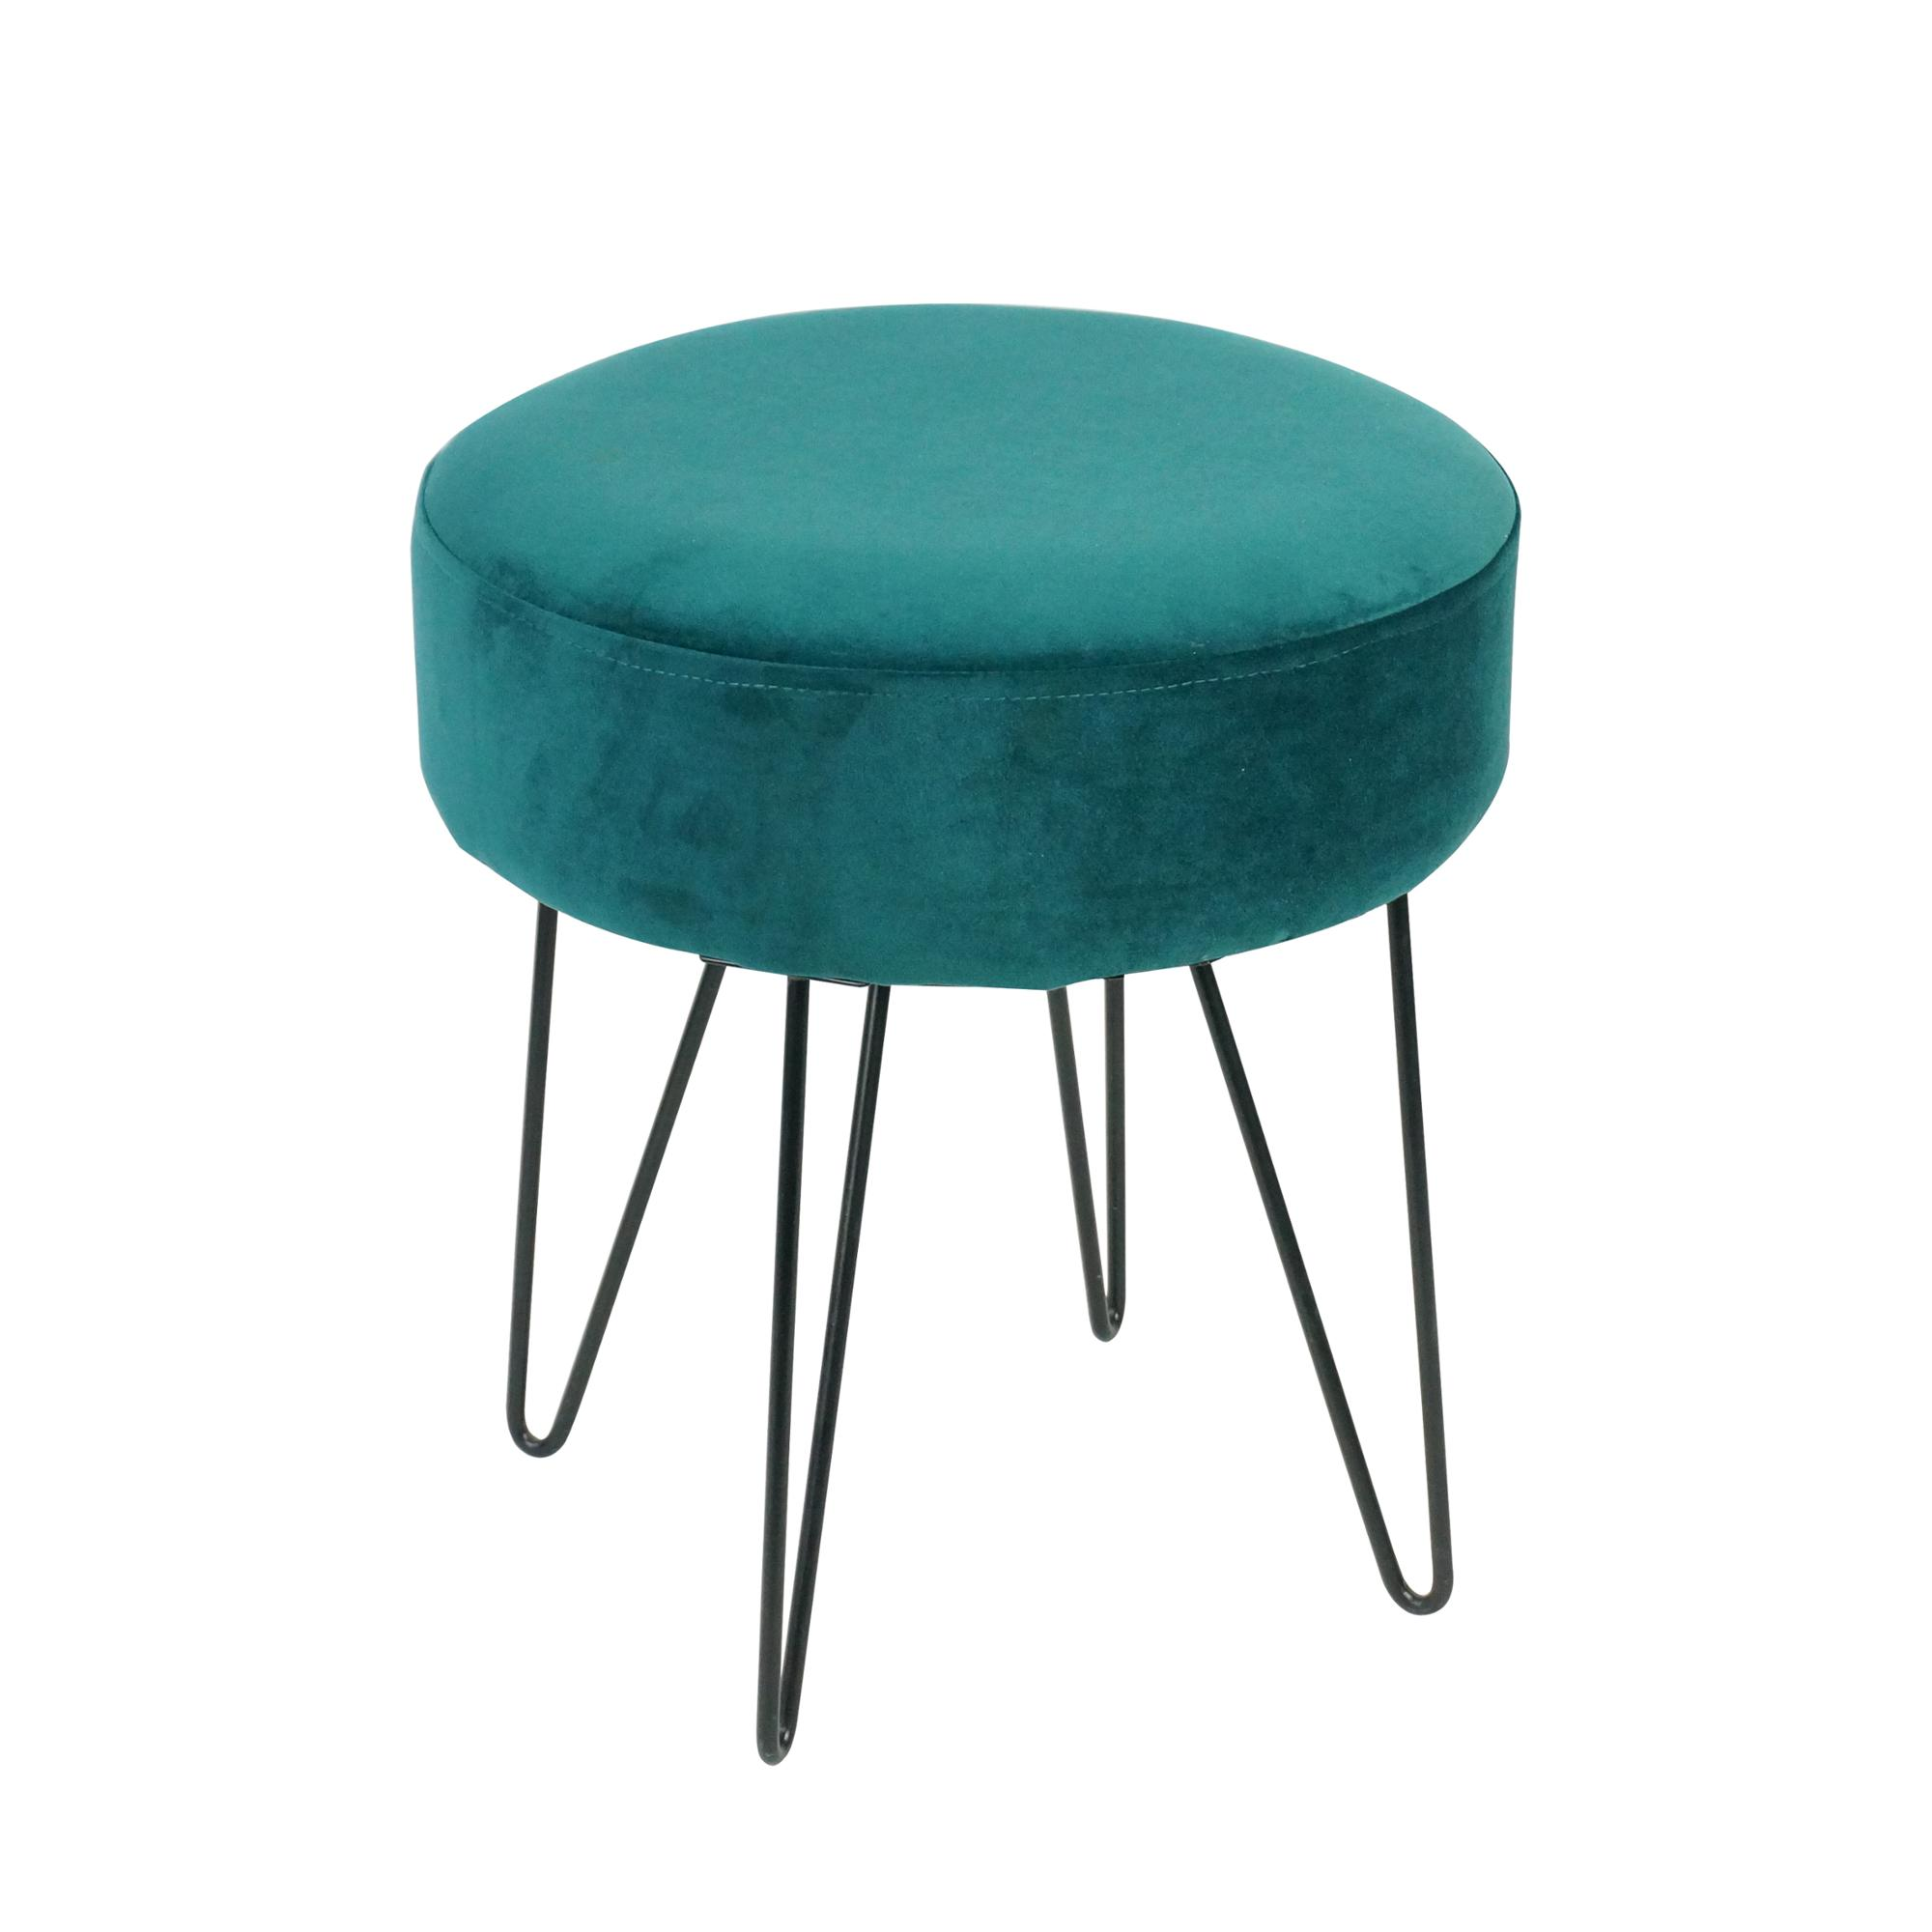 Strange New Design Tufted Large Velvet Round Footrest Ottoman With Metal Legs Buy Round Footrest Footstool Ottoman Product On Alibaba Com Gmtry Best Dining Table And Chair Ideas Images Gmtryco